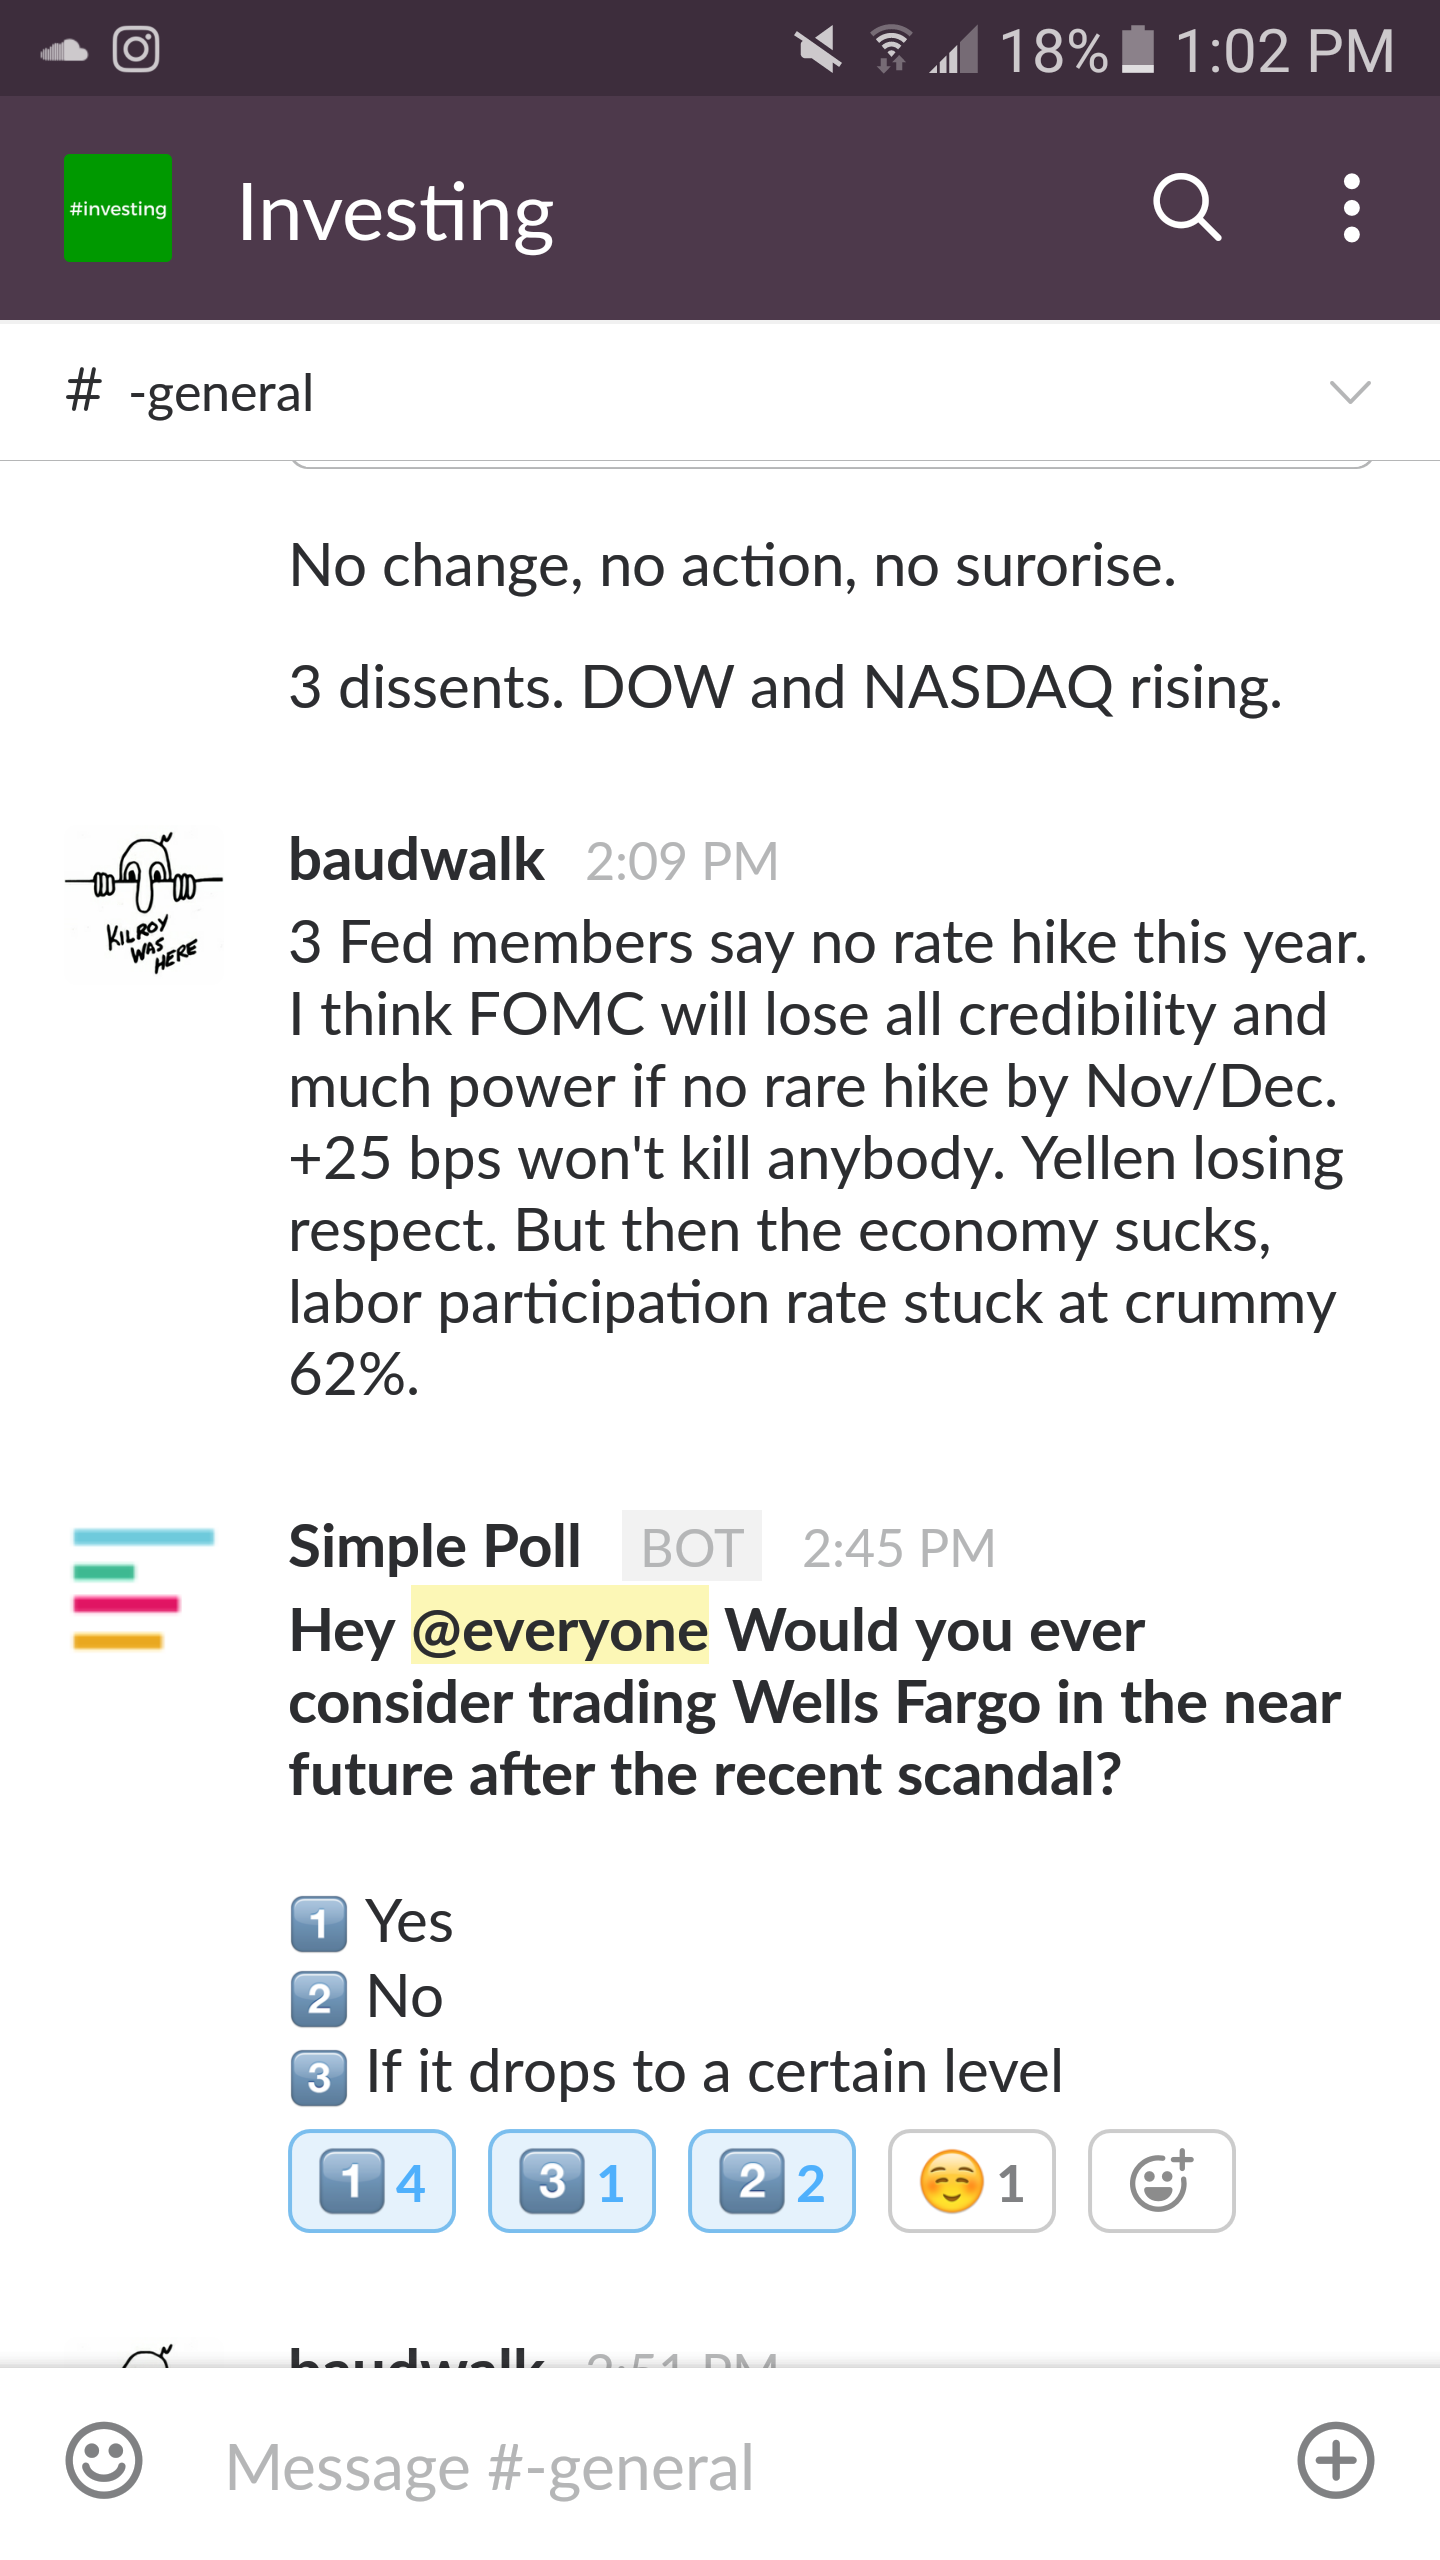 investing chat group